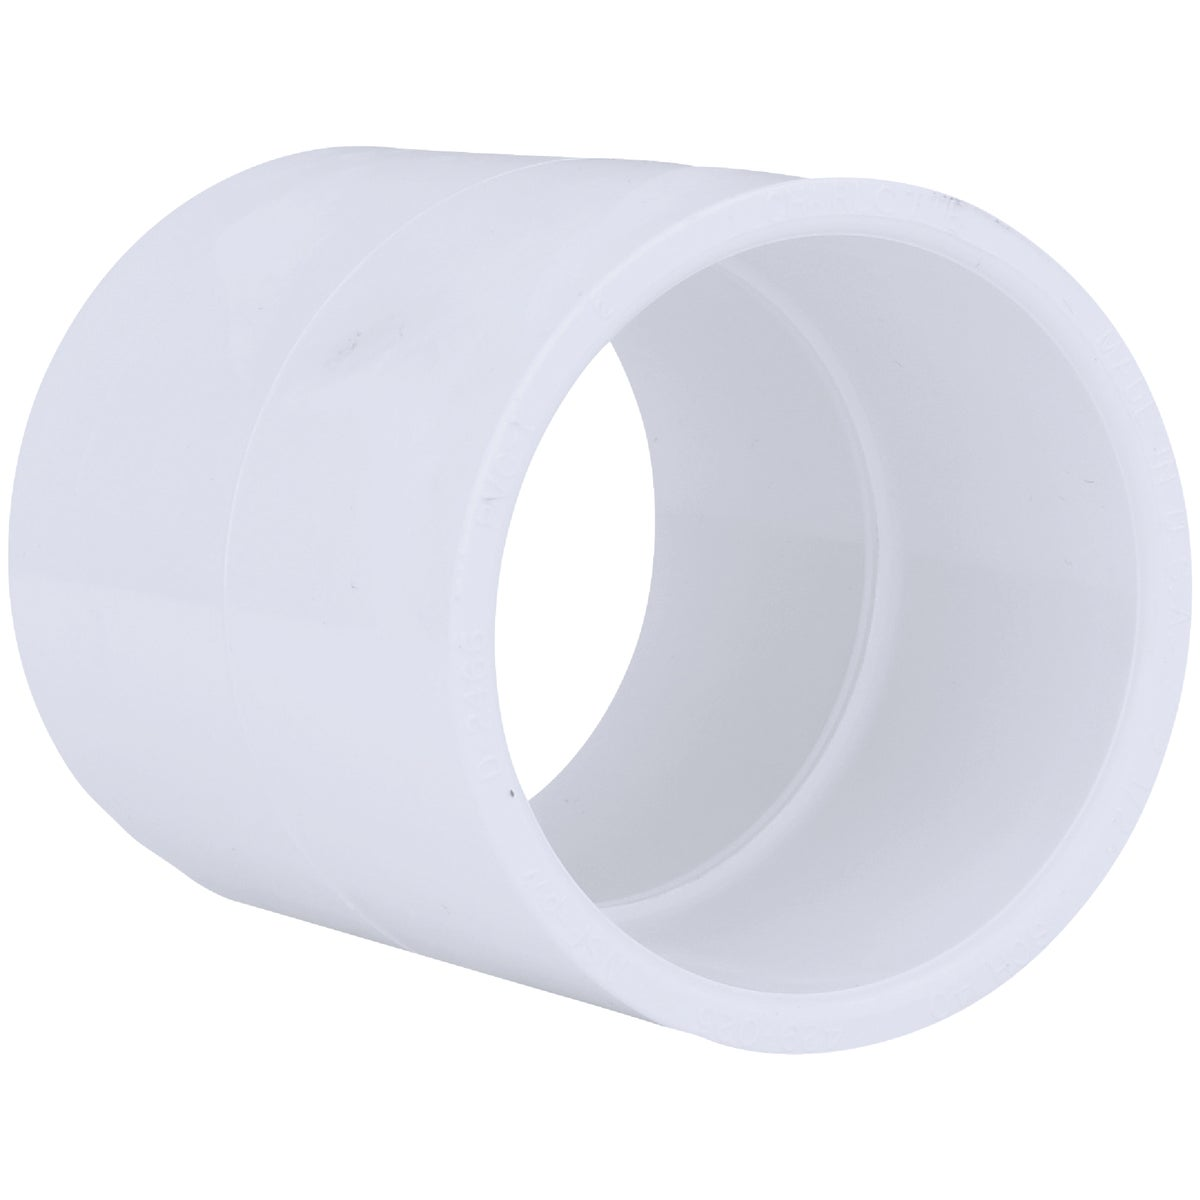 "2-1/2"" SCH40 PVC CPLG - 30190 by Genova Inc"